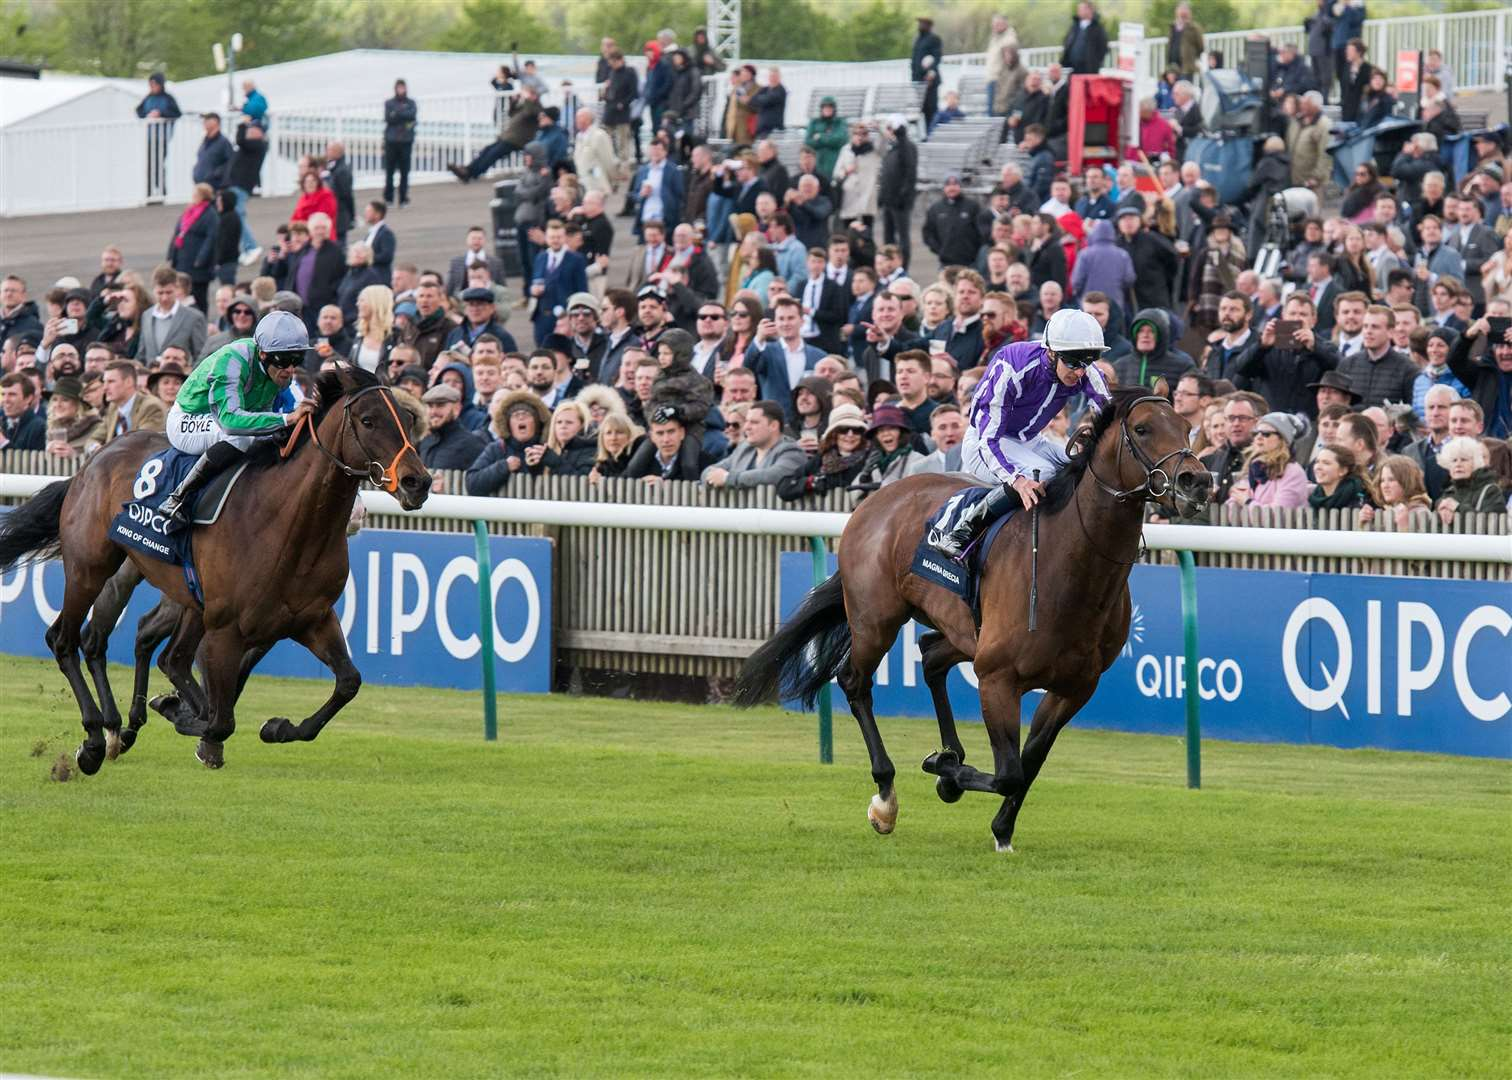 2000 Guineas day at Newmarket Rowley Mile Qipco 2000 Guineas Stakes (Group 1) (British Champions Series) (Colts & Fillies).10. Magna Grecia.Winning jockey: Donnacha O'Brien.Winning trainer: A P O'Brien Picture by Mark Westley. (9793062)